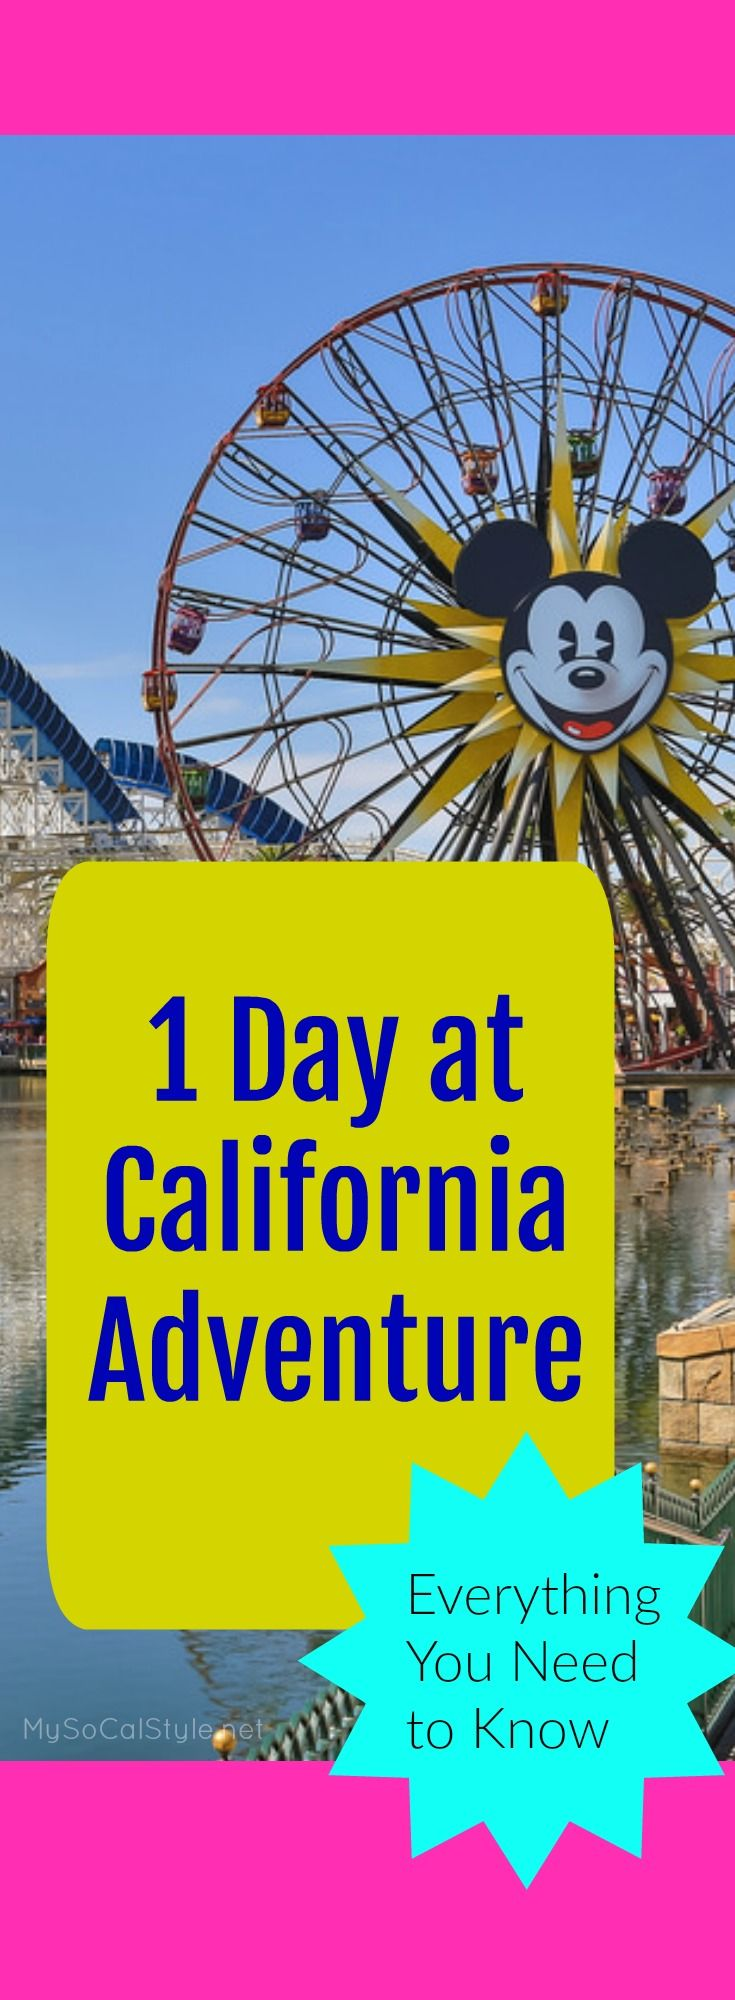 The best strategies for Disneyland's California Adventure Park! | #Disneyland | #CaliforniaAdventure | #DCA | #Disney |